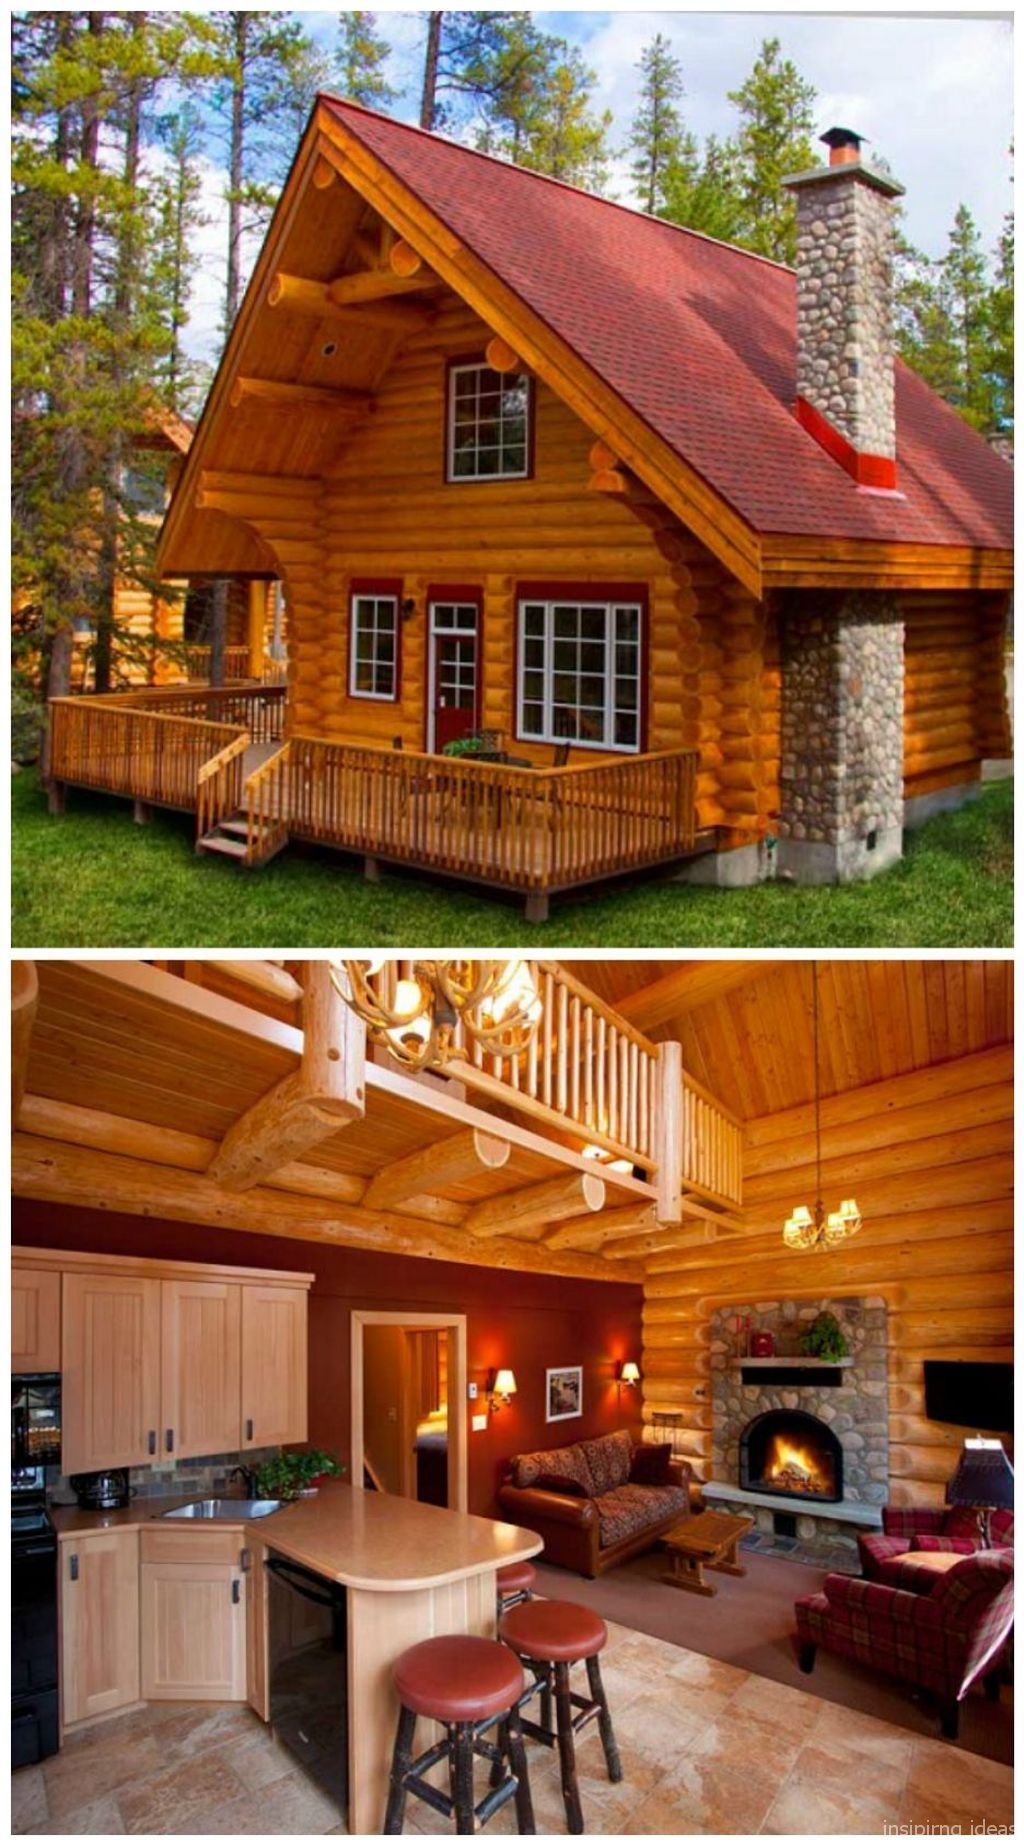 Small Log Home Design Photos on small post and beam, small manufactured log homes, small handcrafted log homes, small modular design, small penthouse design, small log plans, small manor design, small rustic design, small affordable log homes, small home builders, small log interior, small art deco design, small brick design, small cottage house plans, small log decor, small lodge design, small vintage design, small craftsman design, small ranch design, small adobe home designs,